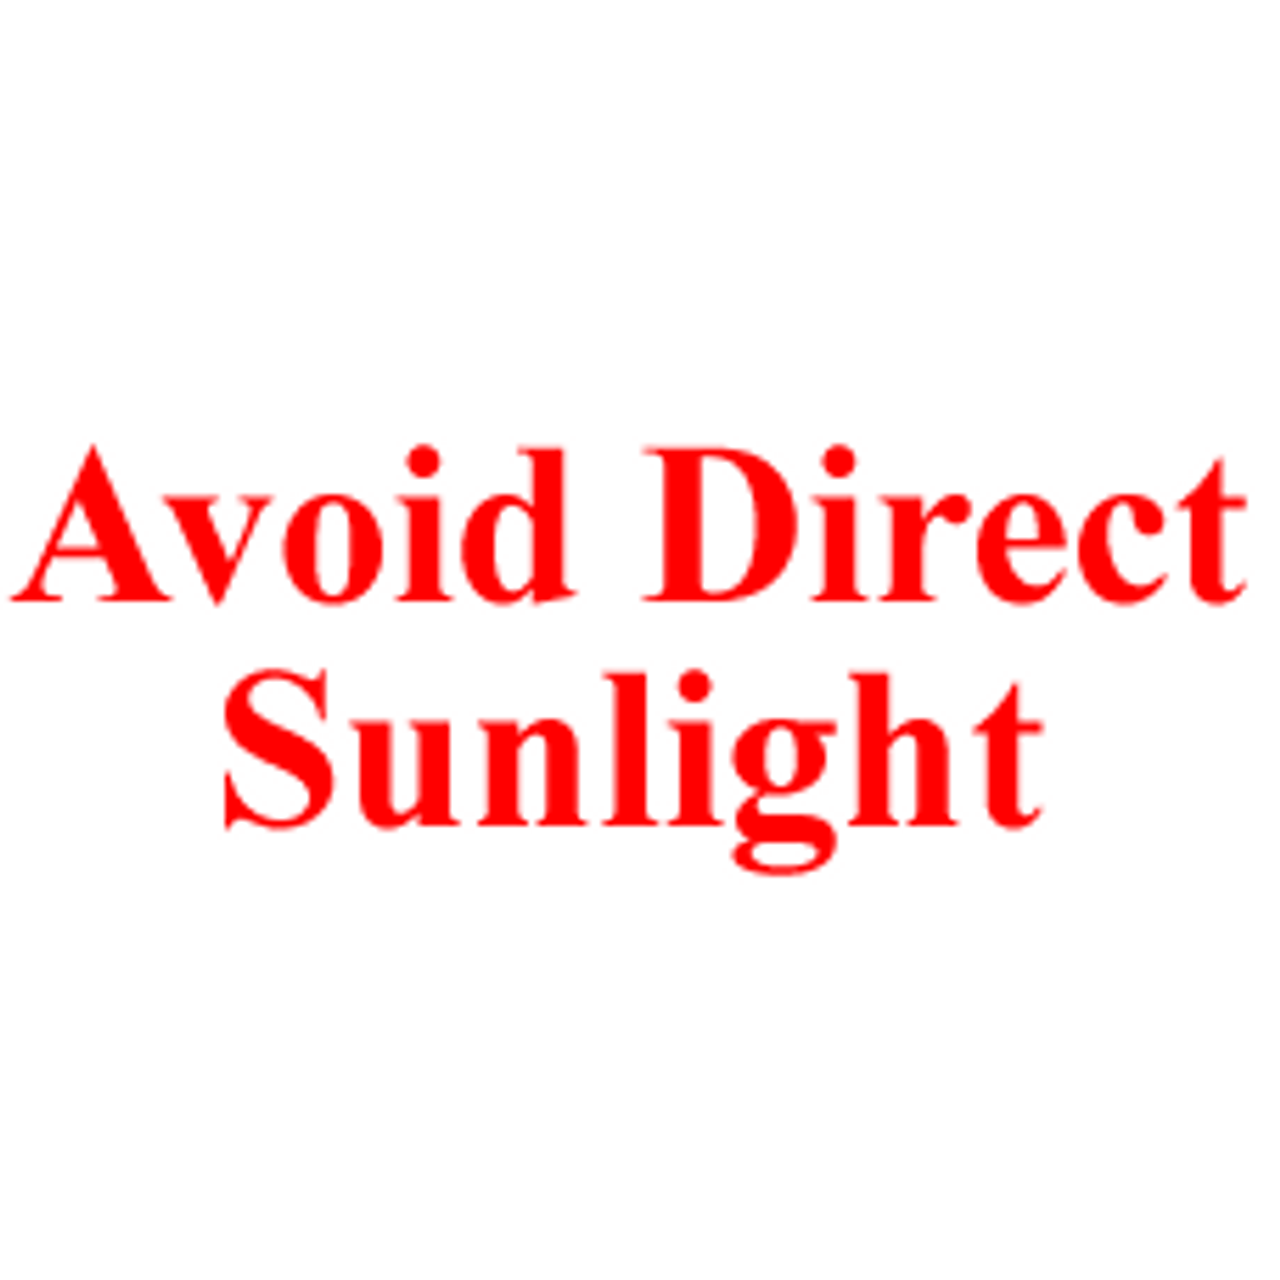 AVOID DIRECT SUNLIGHT Rubber Stamp for mail use self-inking